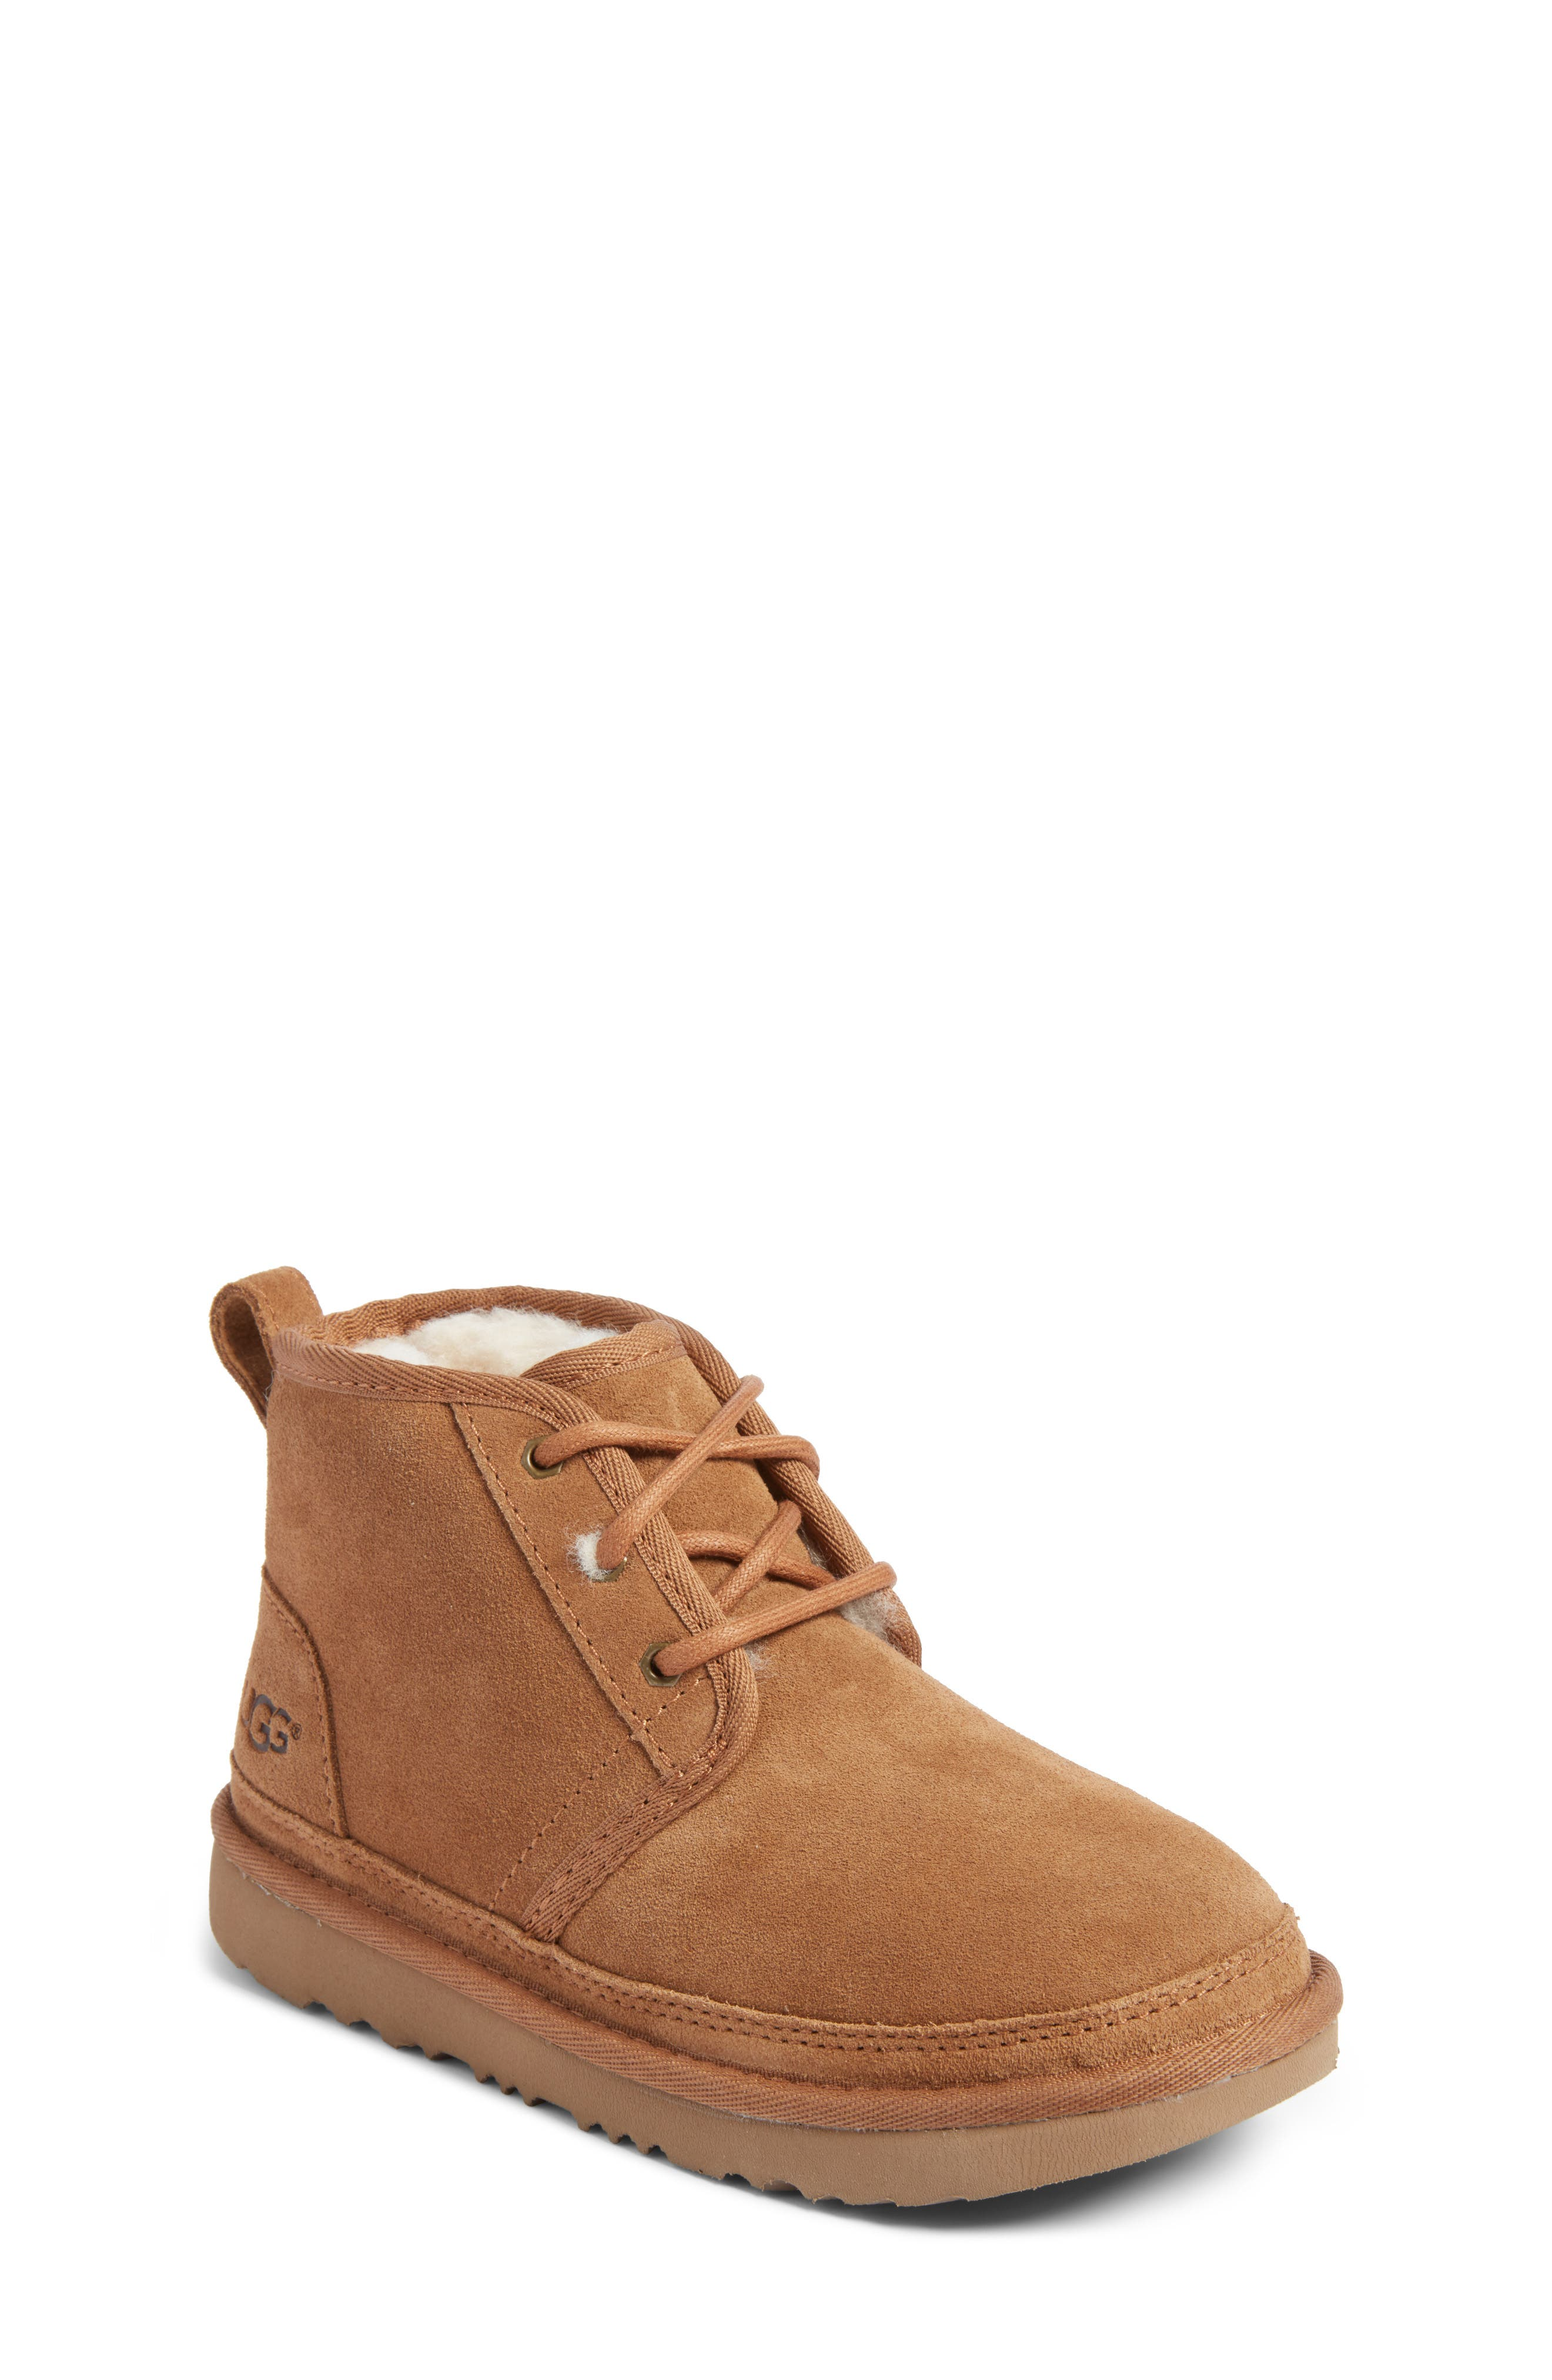 UGG<SUP>®</SUP>, Neumel II Water Resistant Chukka Boot, Main thumbnail 1, color, CHESTNUT BROWN